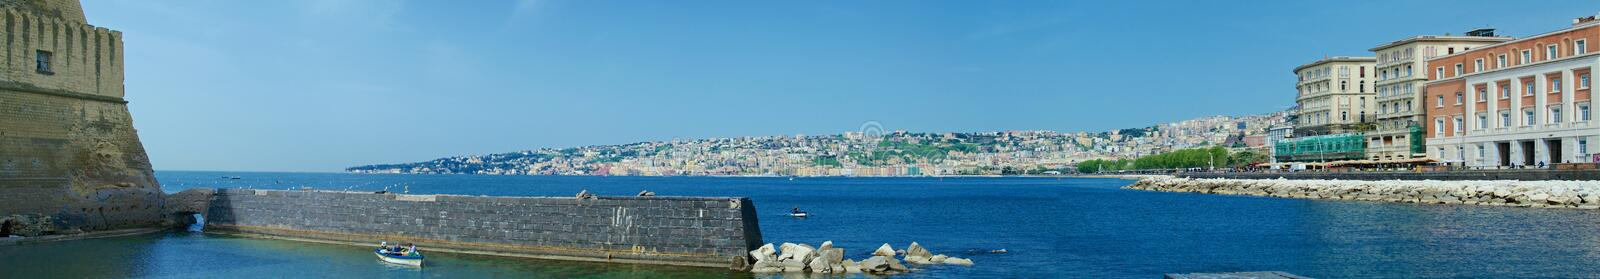 Naples panoramic view from the castle royalty free stock photo